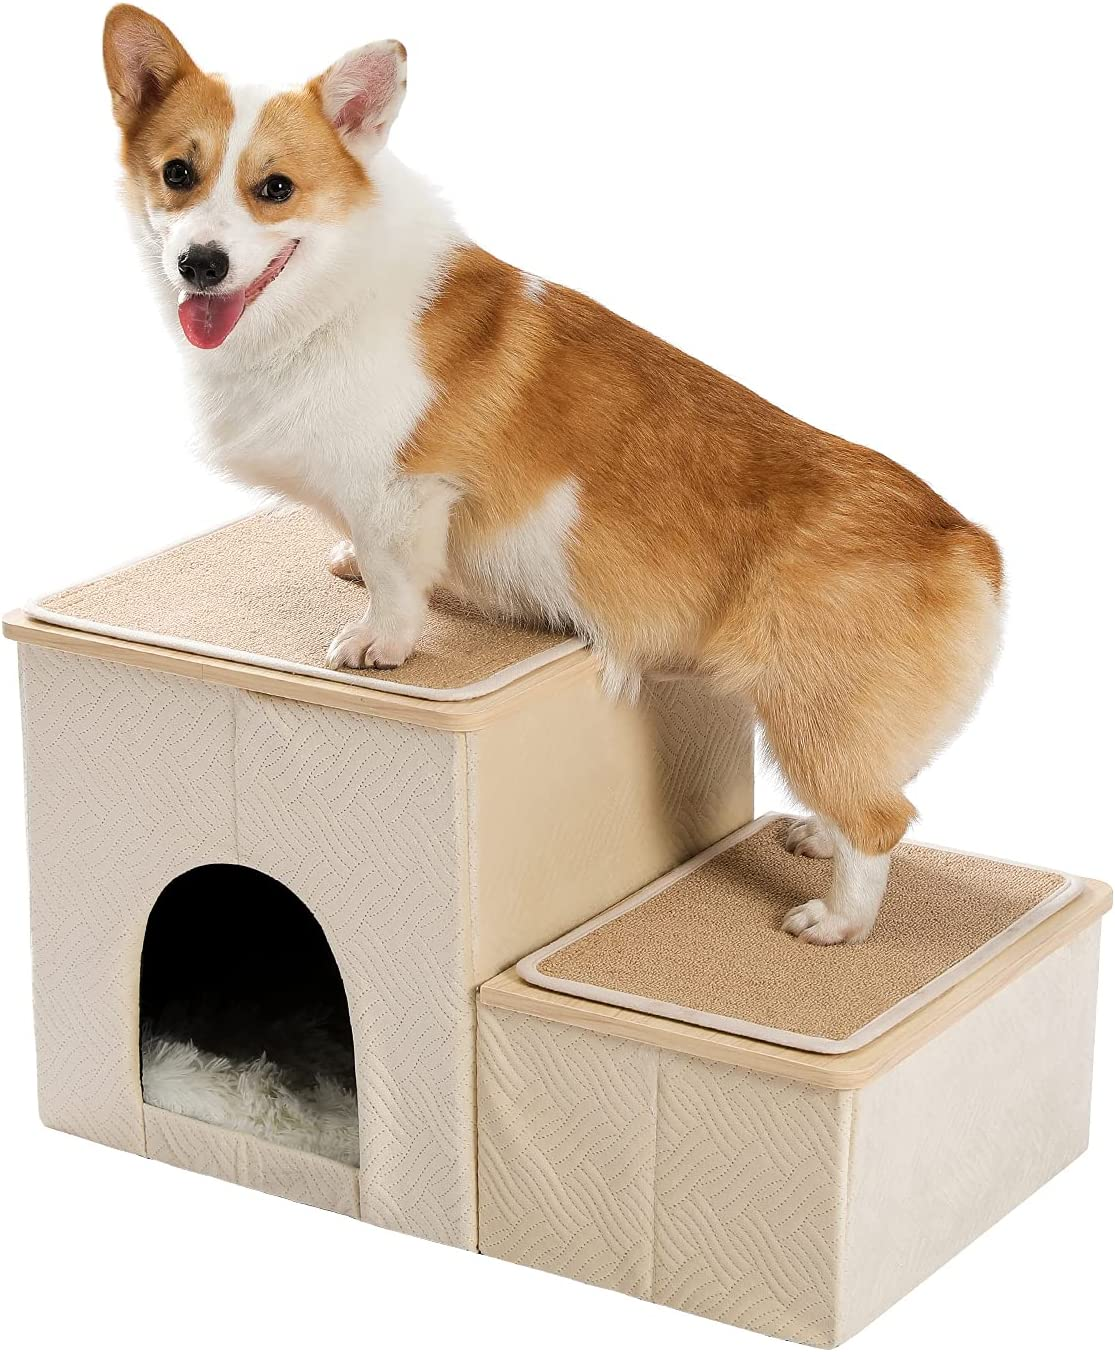 PETEPELA Max 52% OFF Dog Stair Steps with 2-Step to Box Couch Storage Now on sale